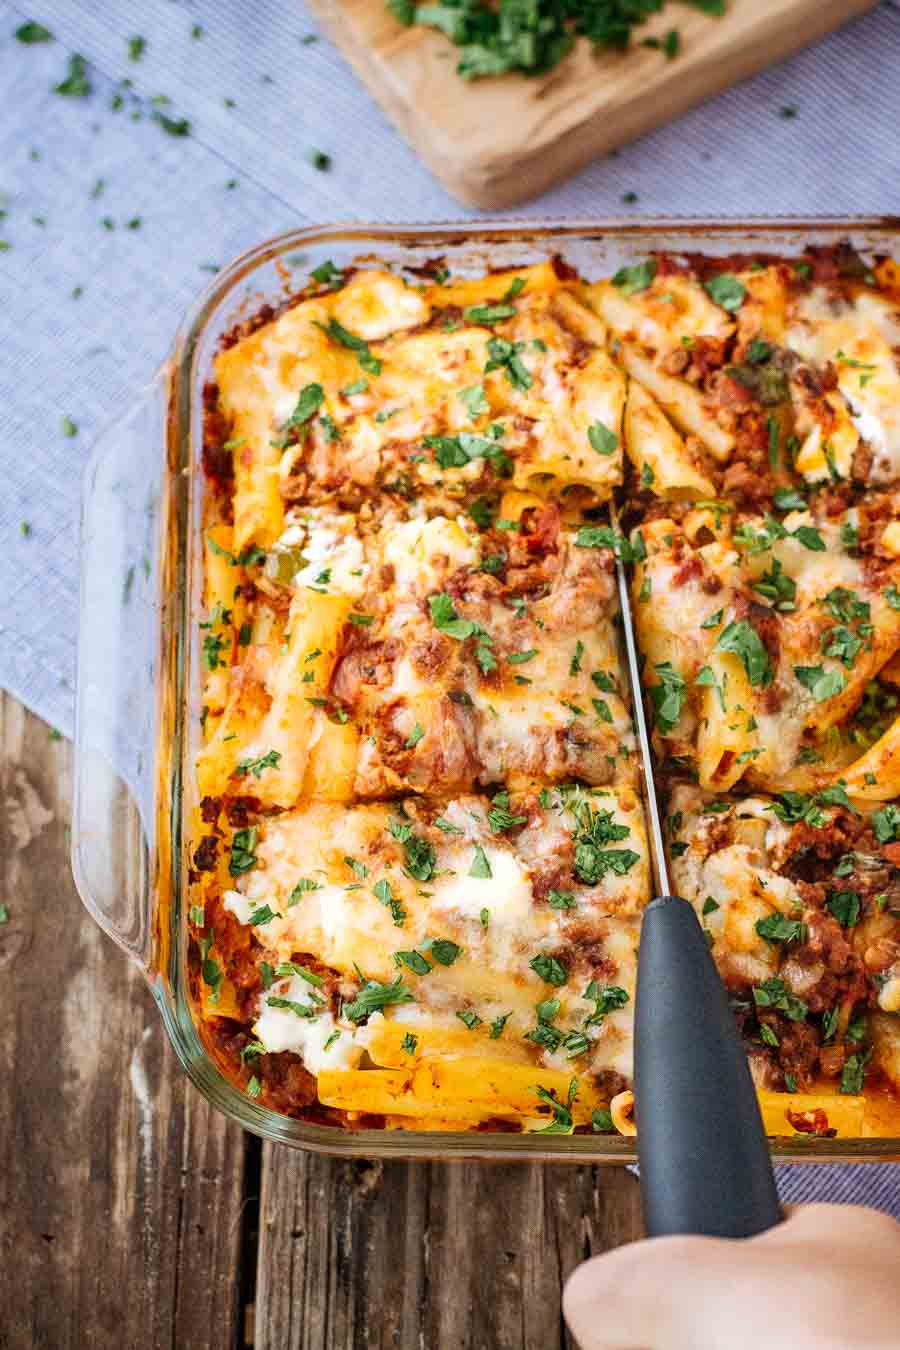 A woman is photographed from the front view as she is cutting into a freshly baked pasta bake